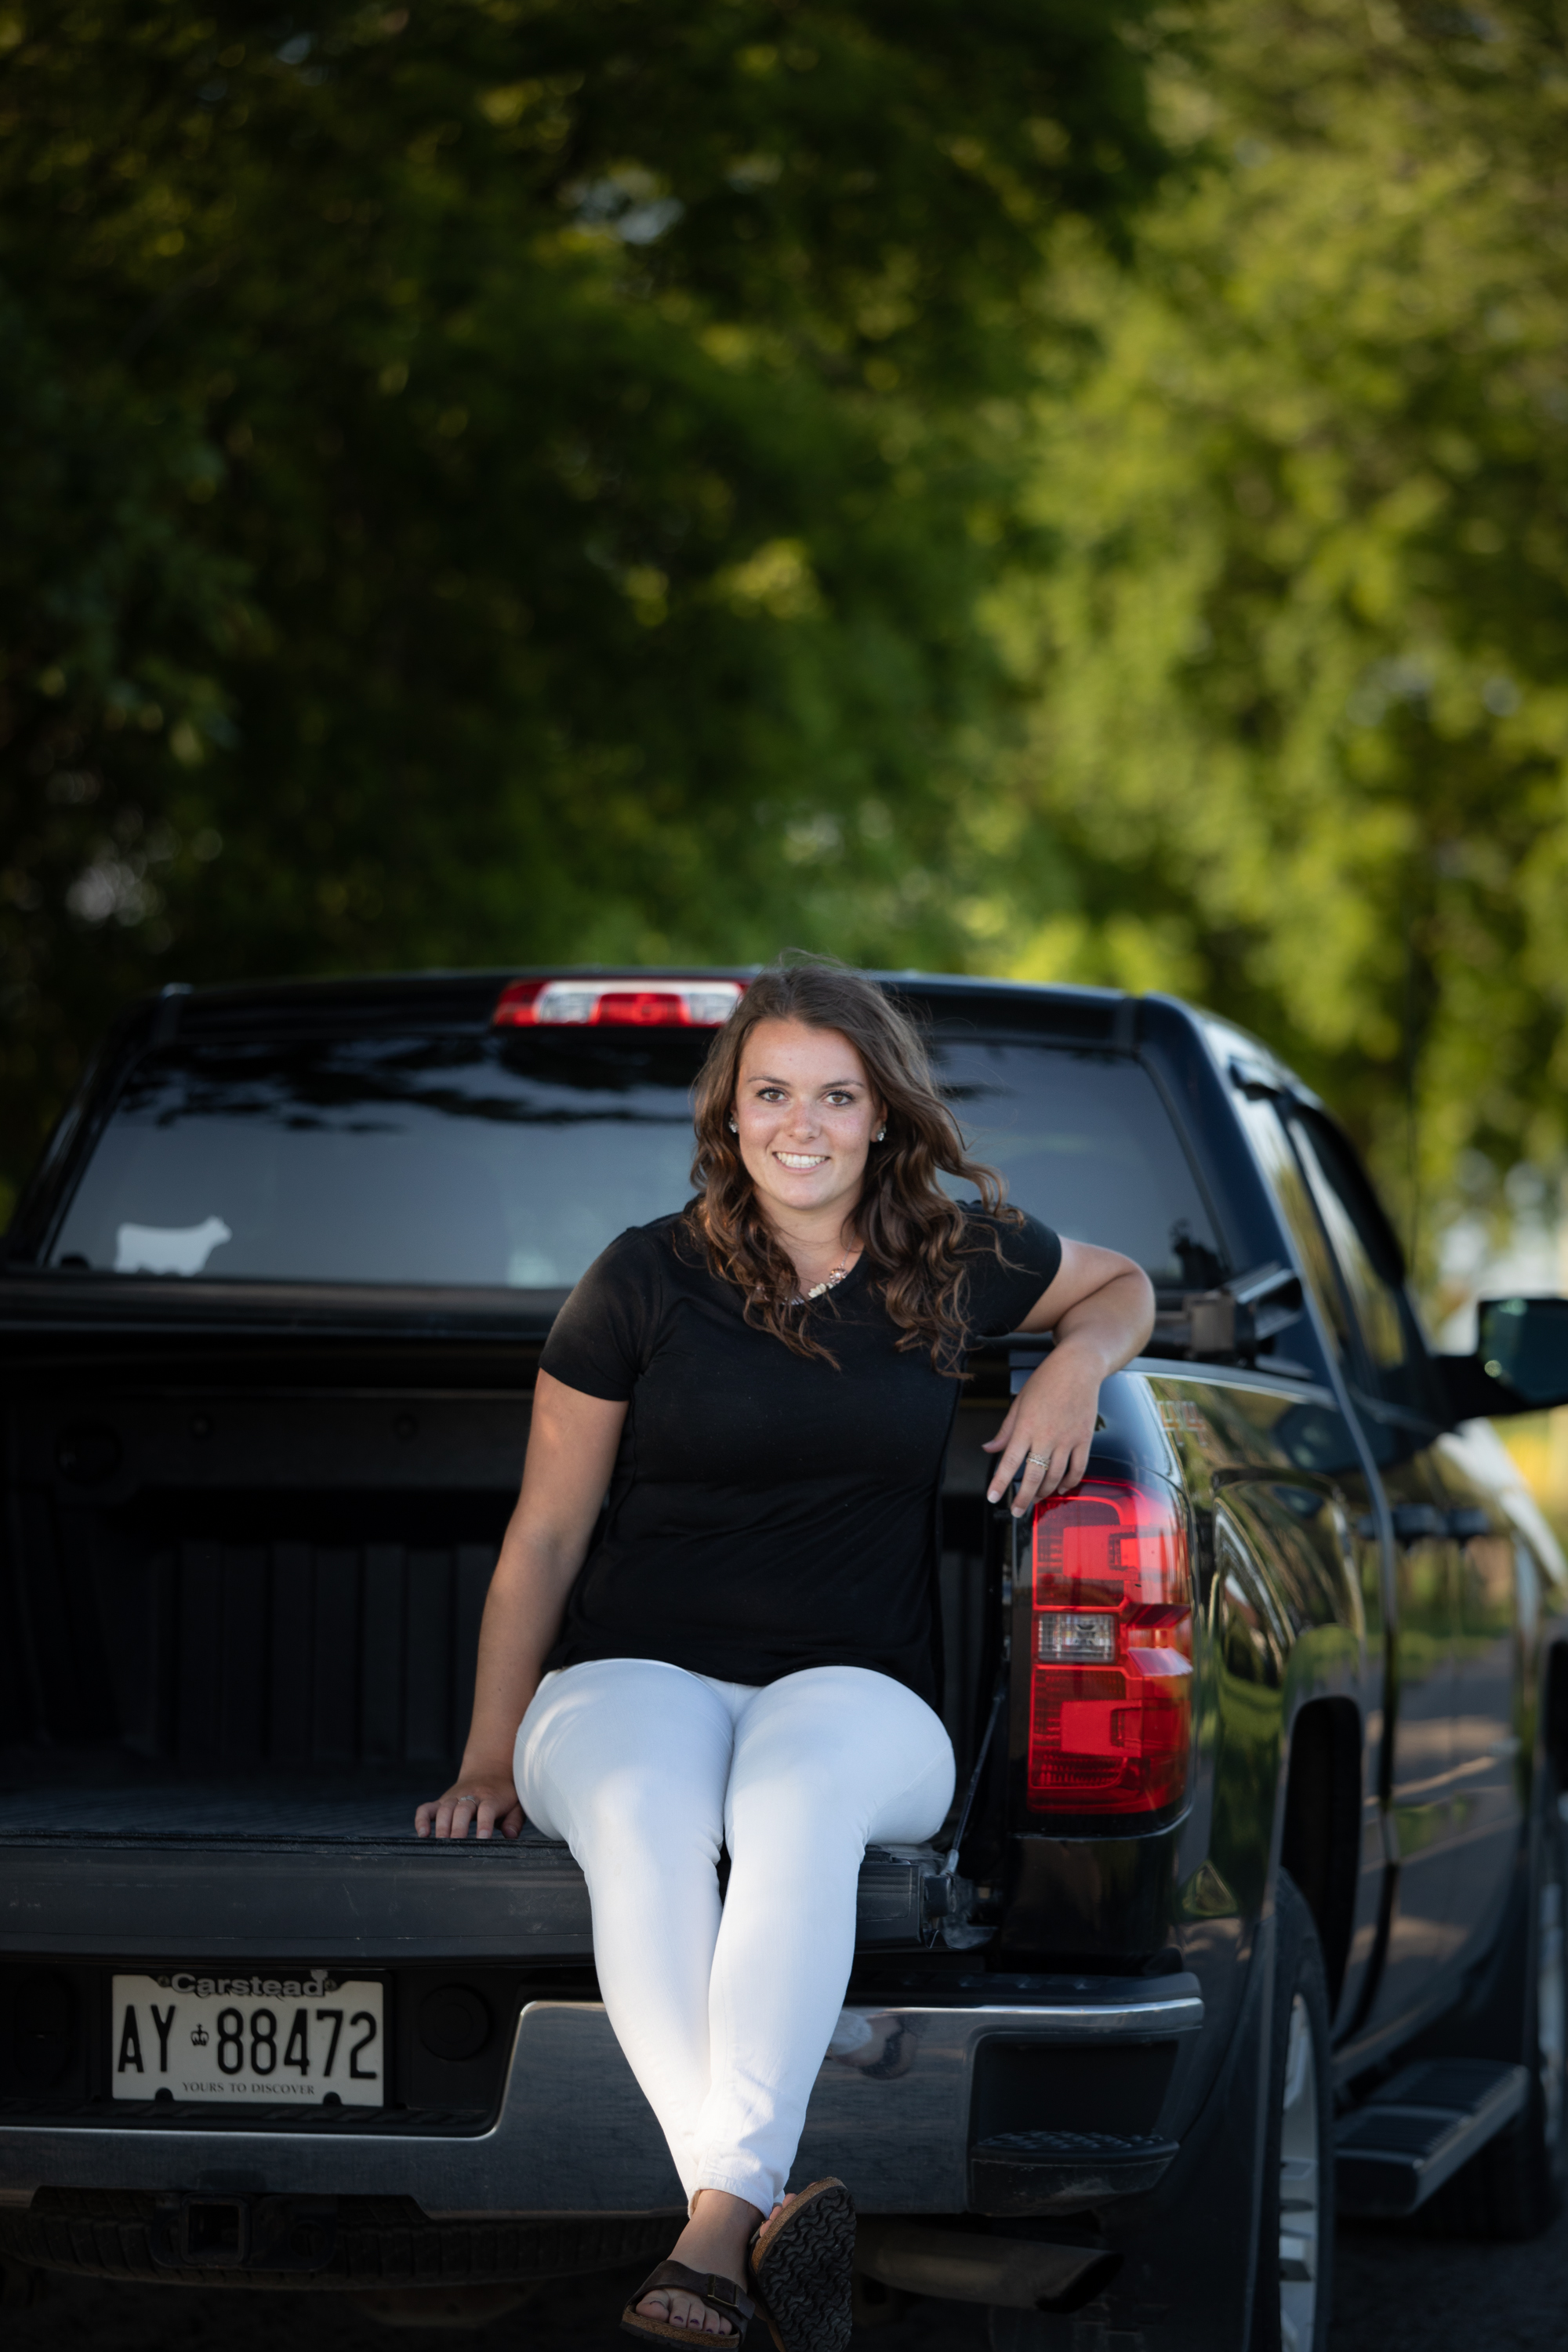 country-agricultural-photographer-Family-group-Jodie-Aldred-Photography-Elgin-Huron-Middlesex-Family-country-rural-London-Ontario-chevy-truck-farm-girl.jpg